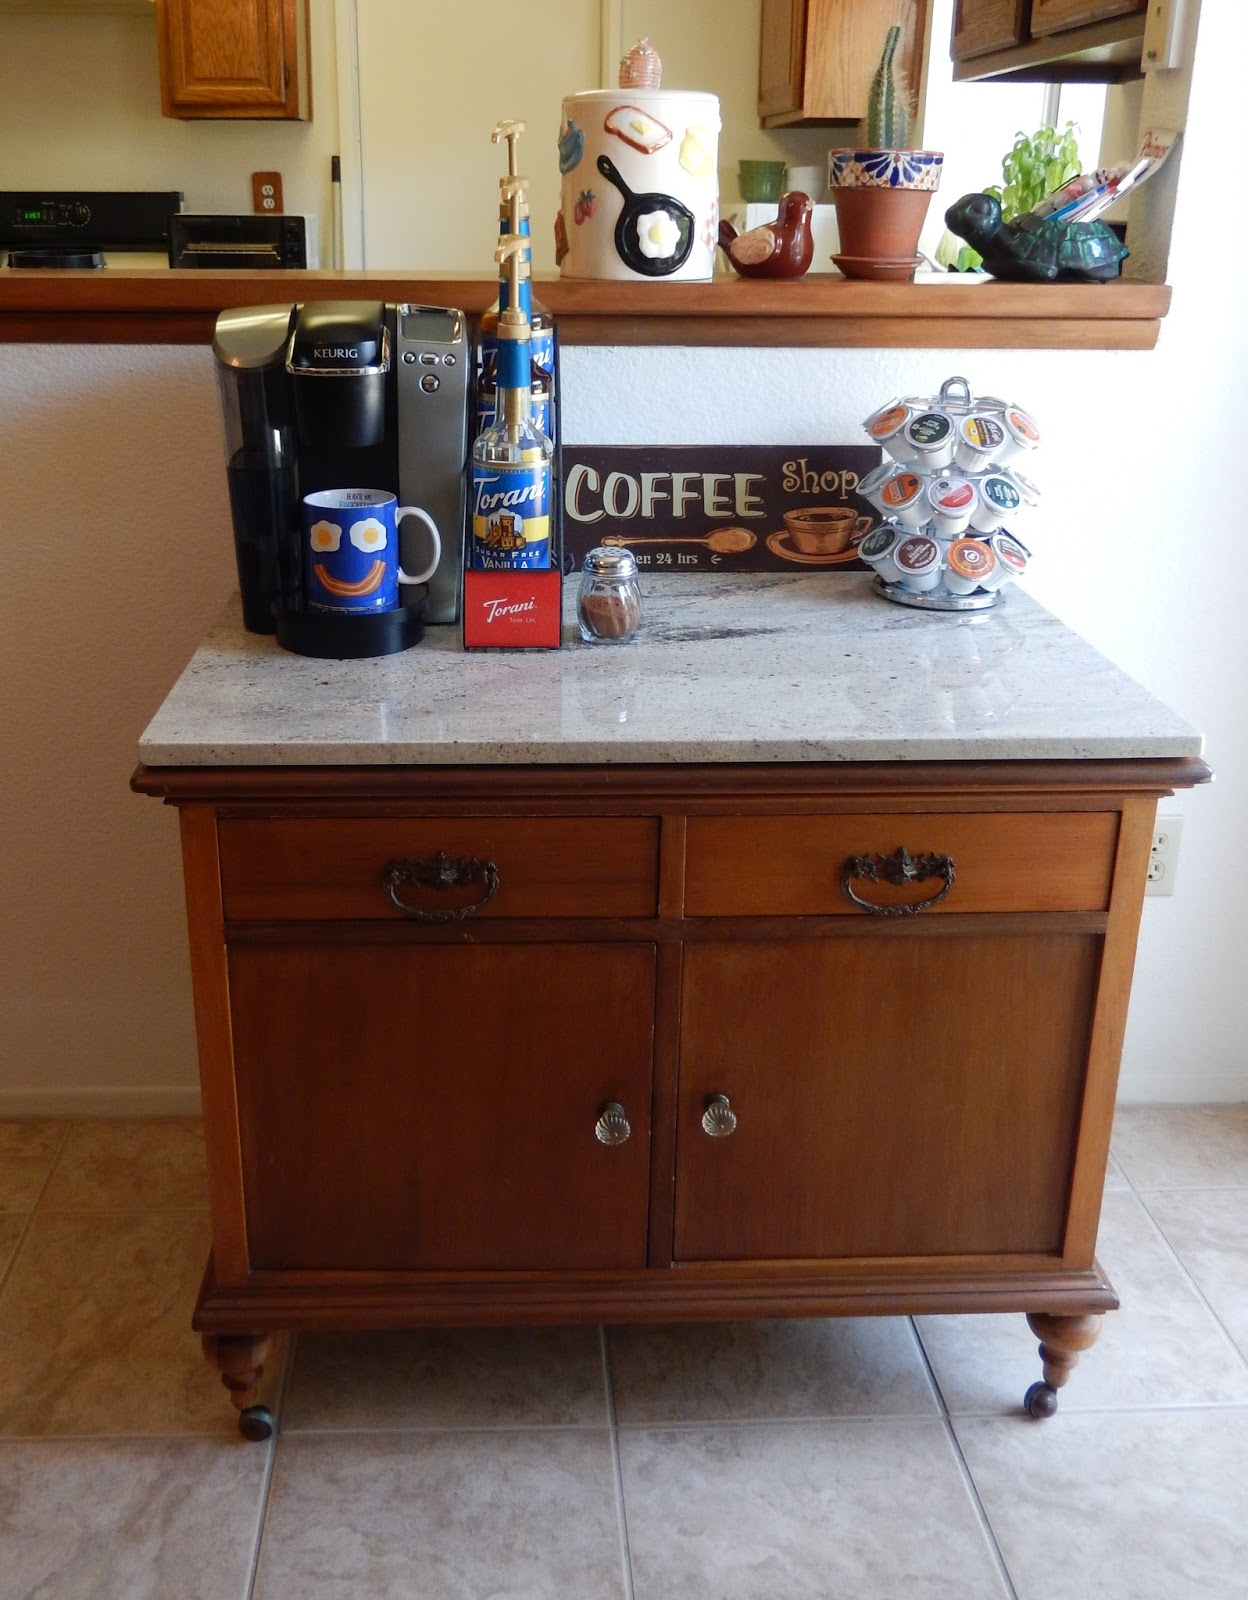 theworldaccordingtoeggface: My DIY Coffee Bar Project